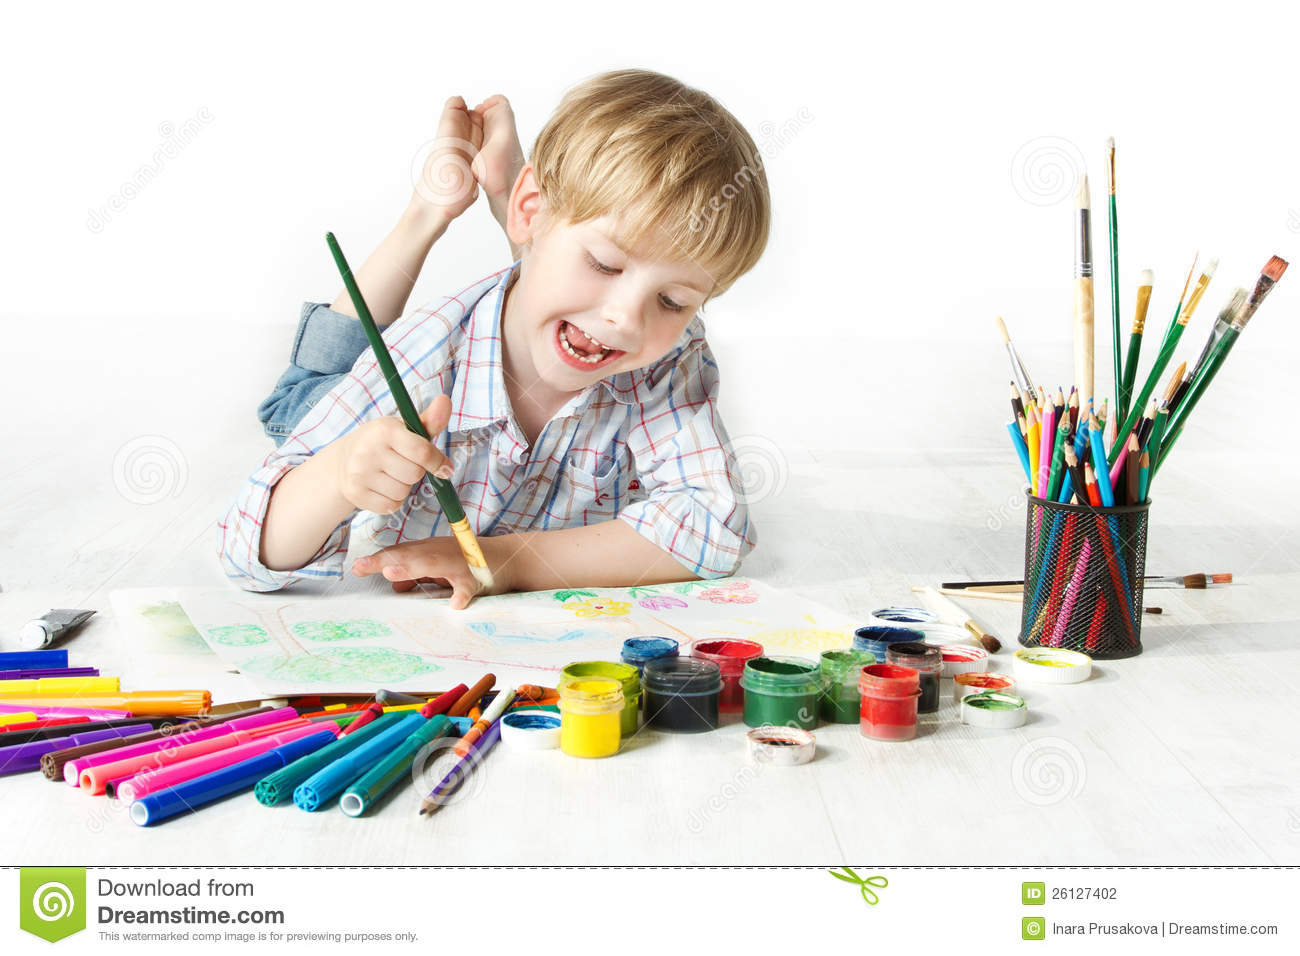 Uncategorized Child Drawing child drawing stock images download 50111 photos happy cheerful with brush in album photography